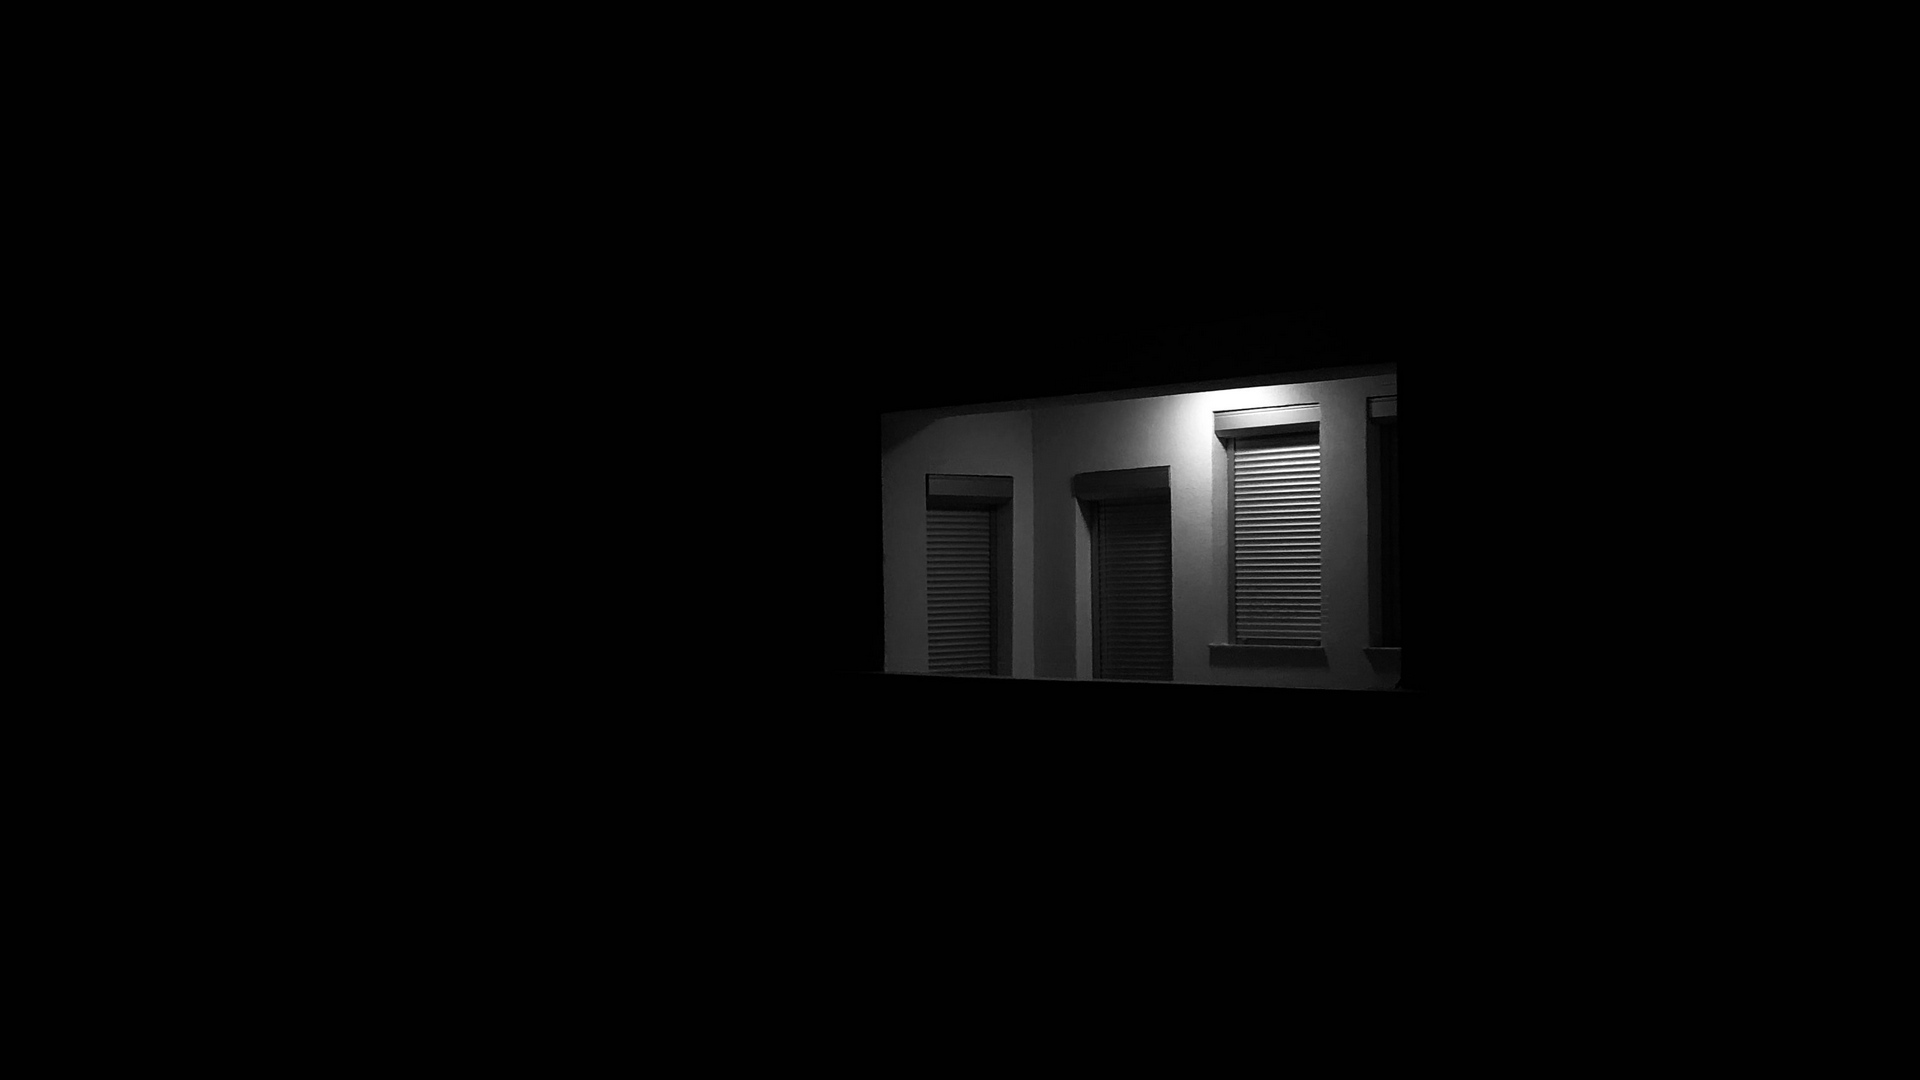 wall door dark x